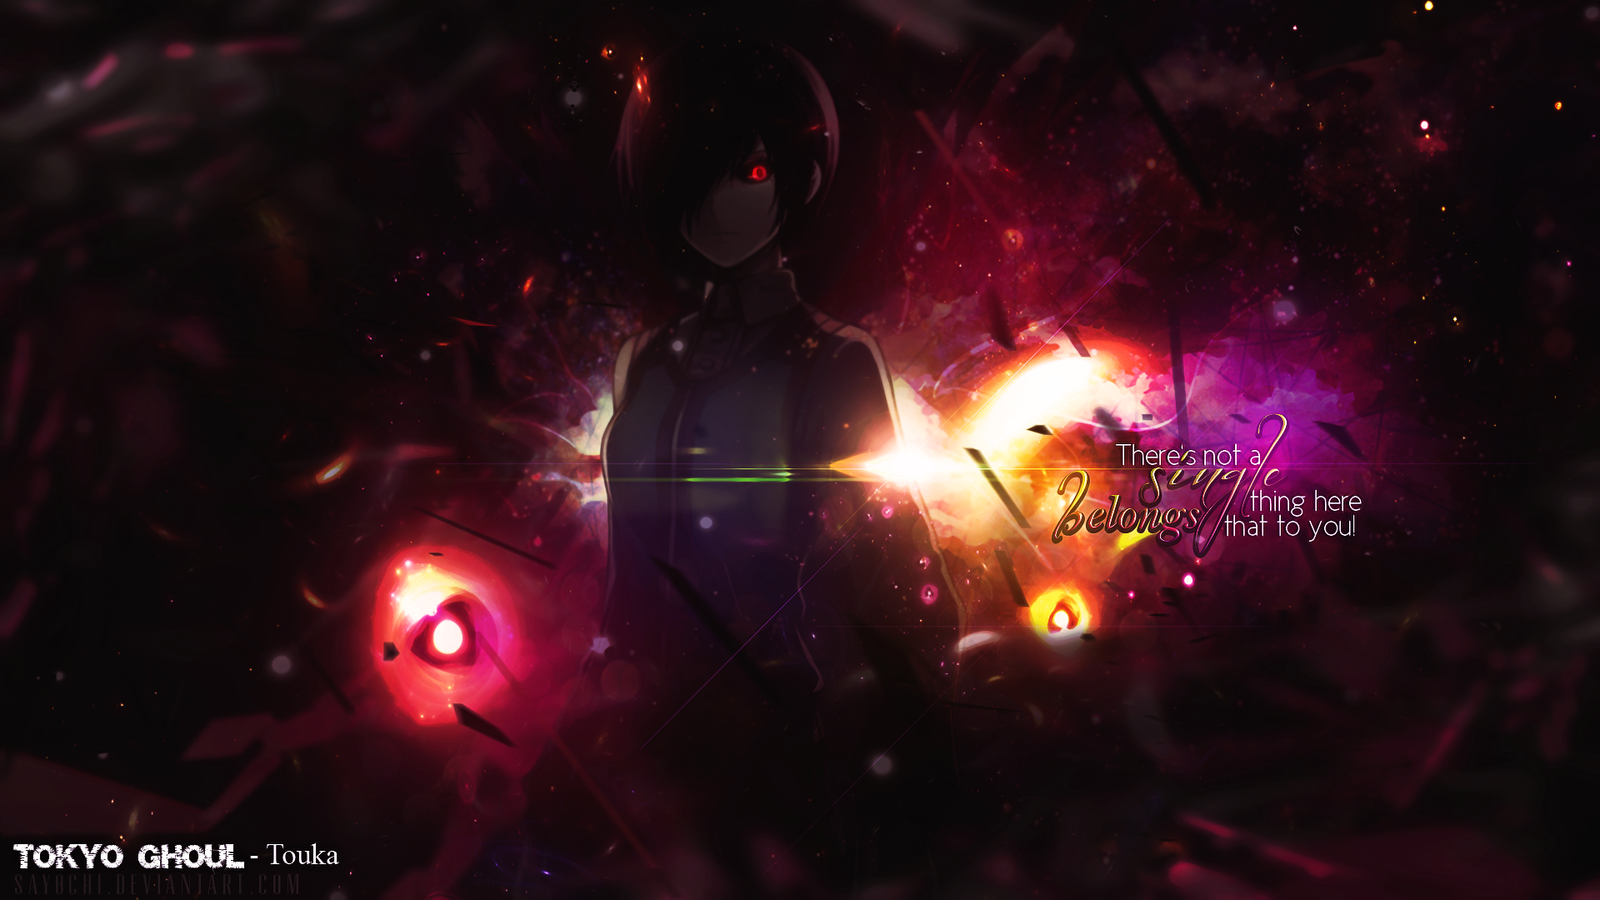 Tokyo Ghoul 1920 X 1080 Hd By Say0Chi On Deviantart Important 1600x900